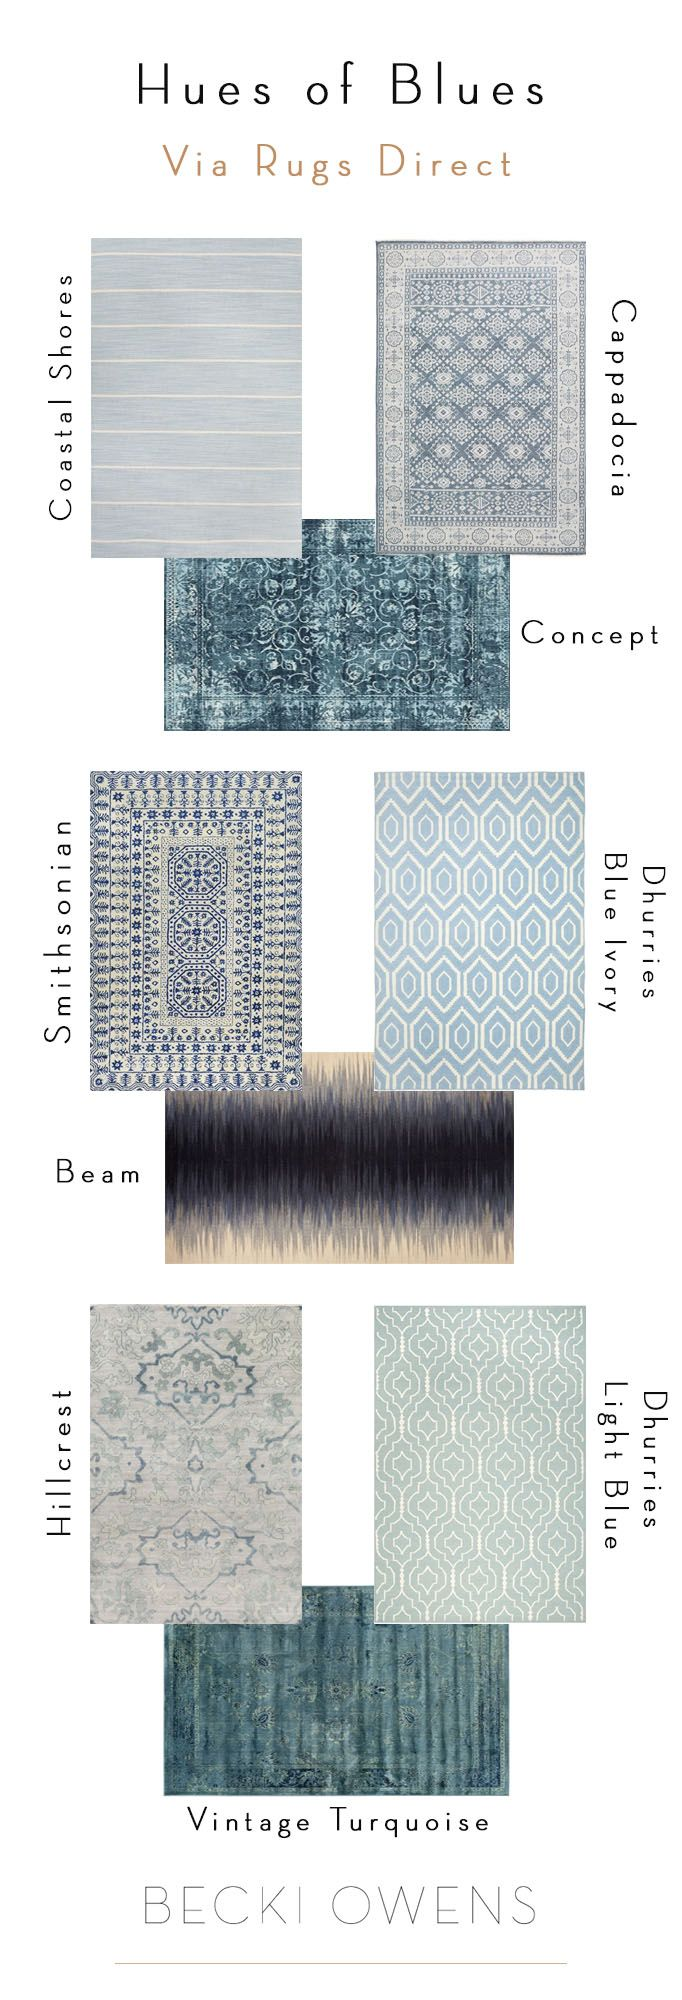 There are so many beautiful shades of blue rugs. Some are subtle and work as a great neutrals, while others can add fresh, vibrant color to a space. Blue rugs work well in coastal designs, like the master bedroom of my San Clemente Beach House project. They can also be bright, clean and give contemporary update. I've selected several pretty blue rugs from Rugs Direct that are excellent foundations for a room.